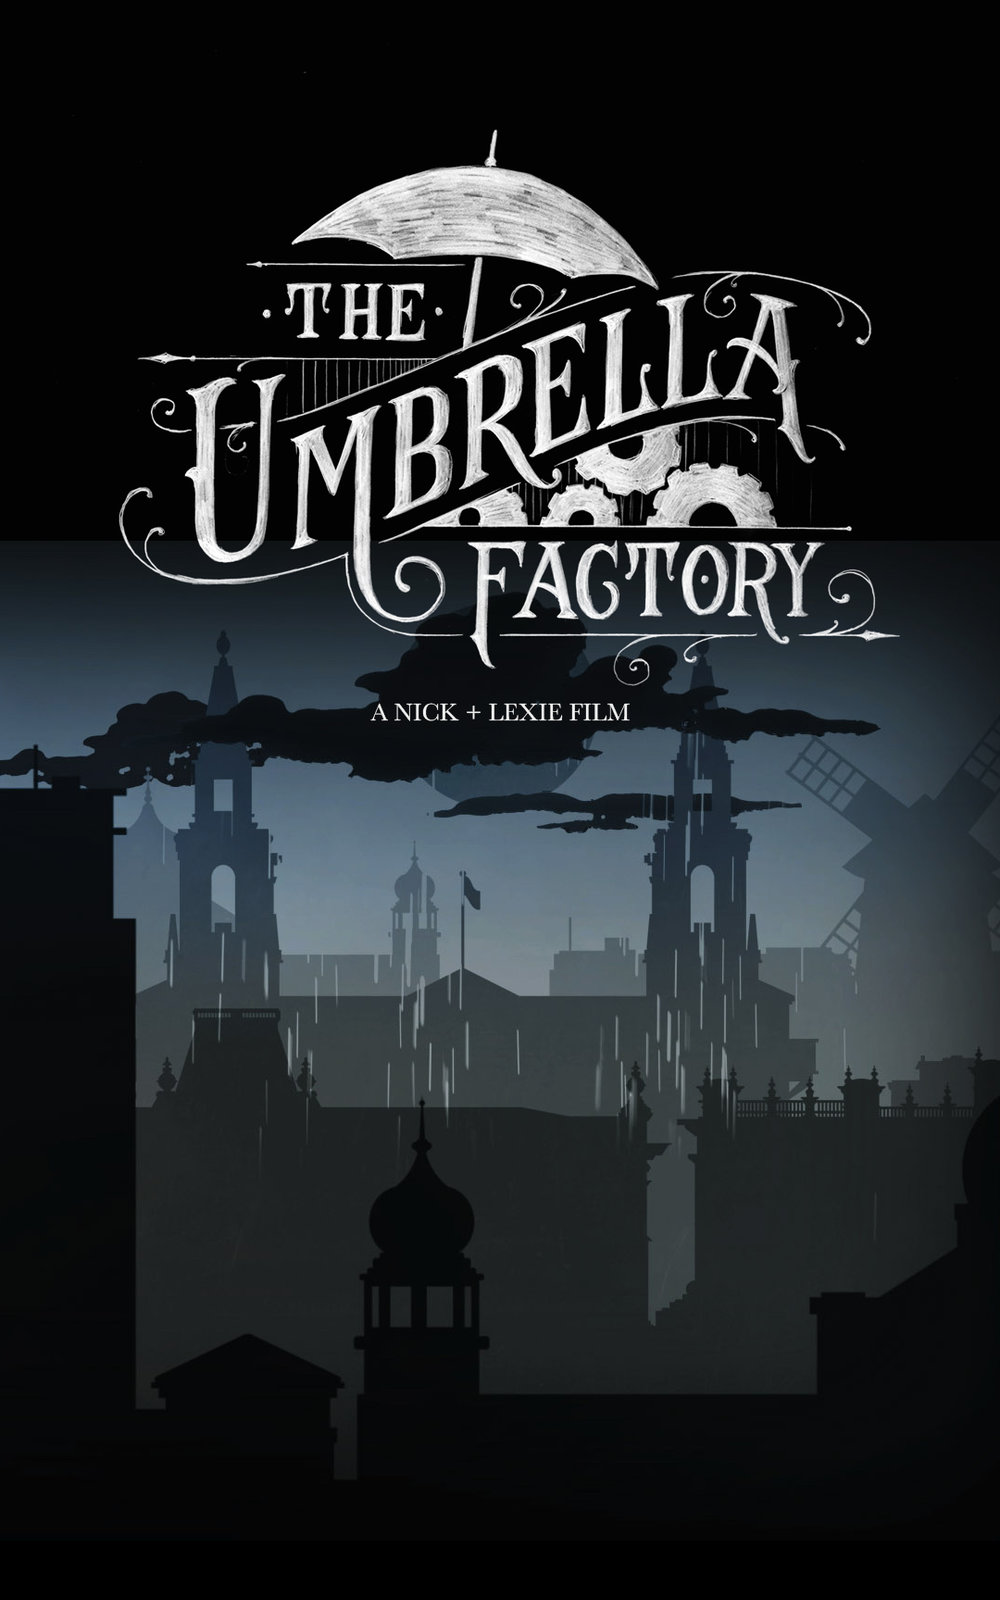 Umbrella Factory Poster.jpeg